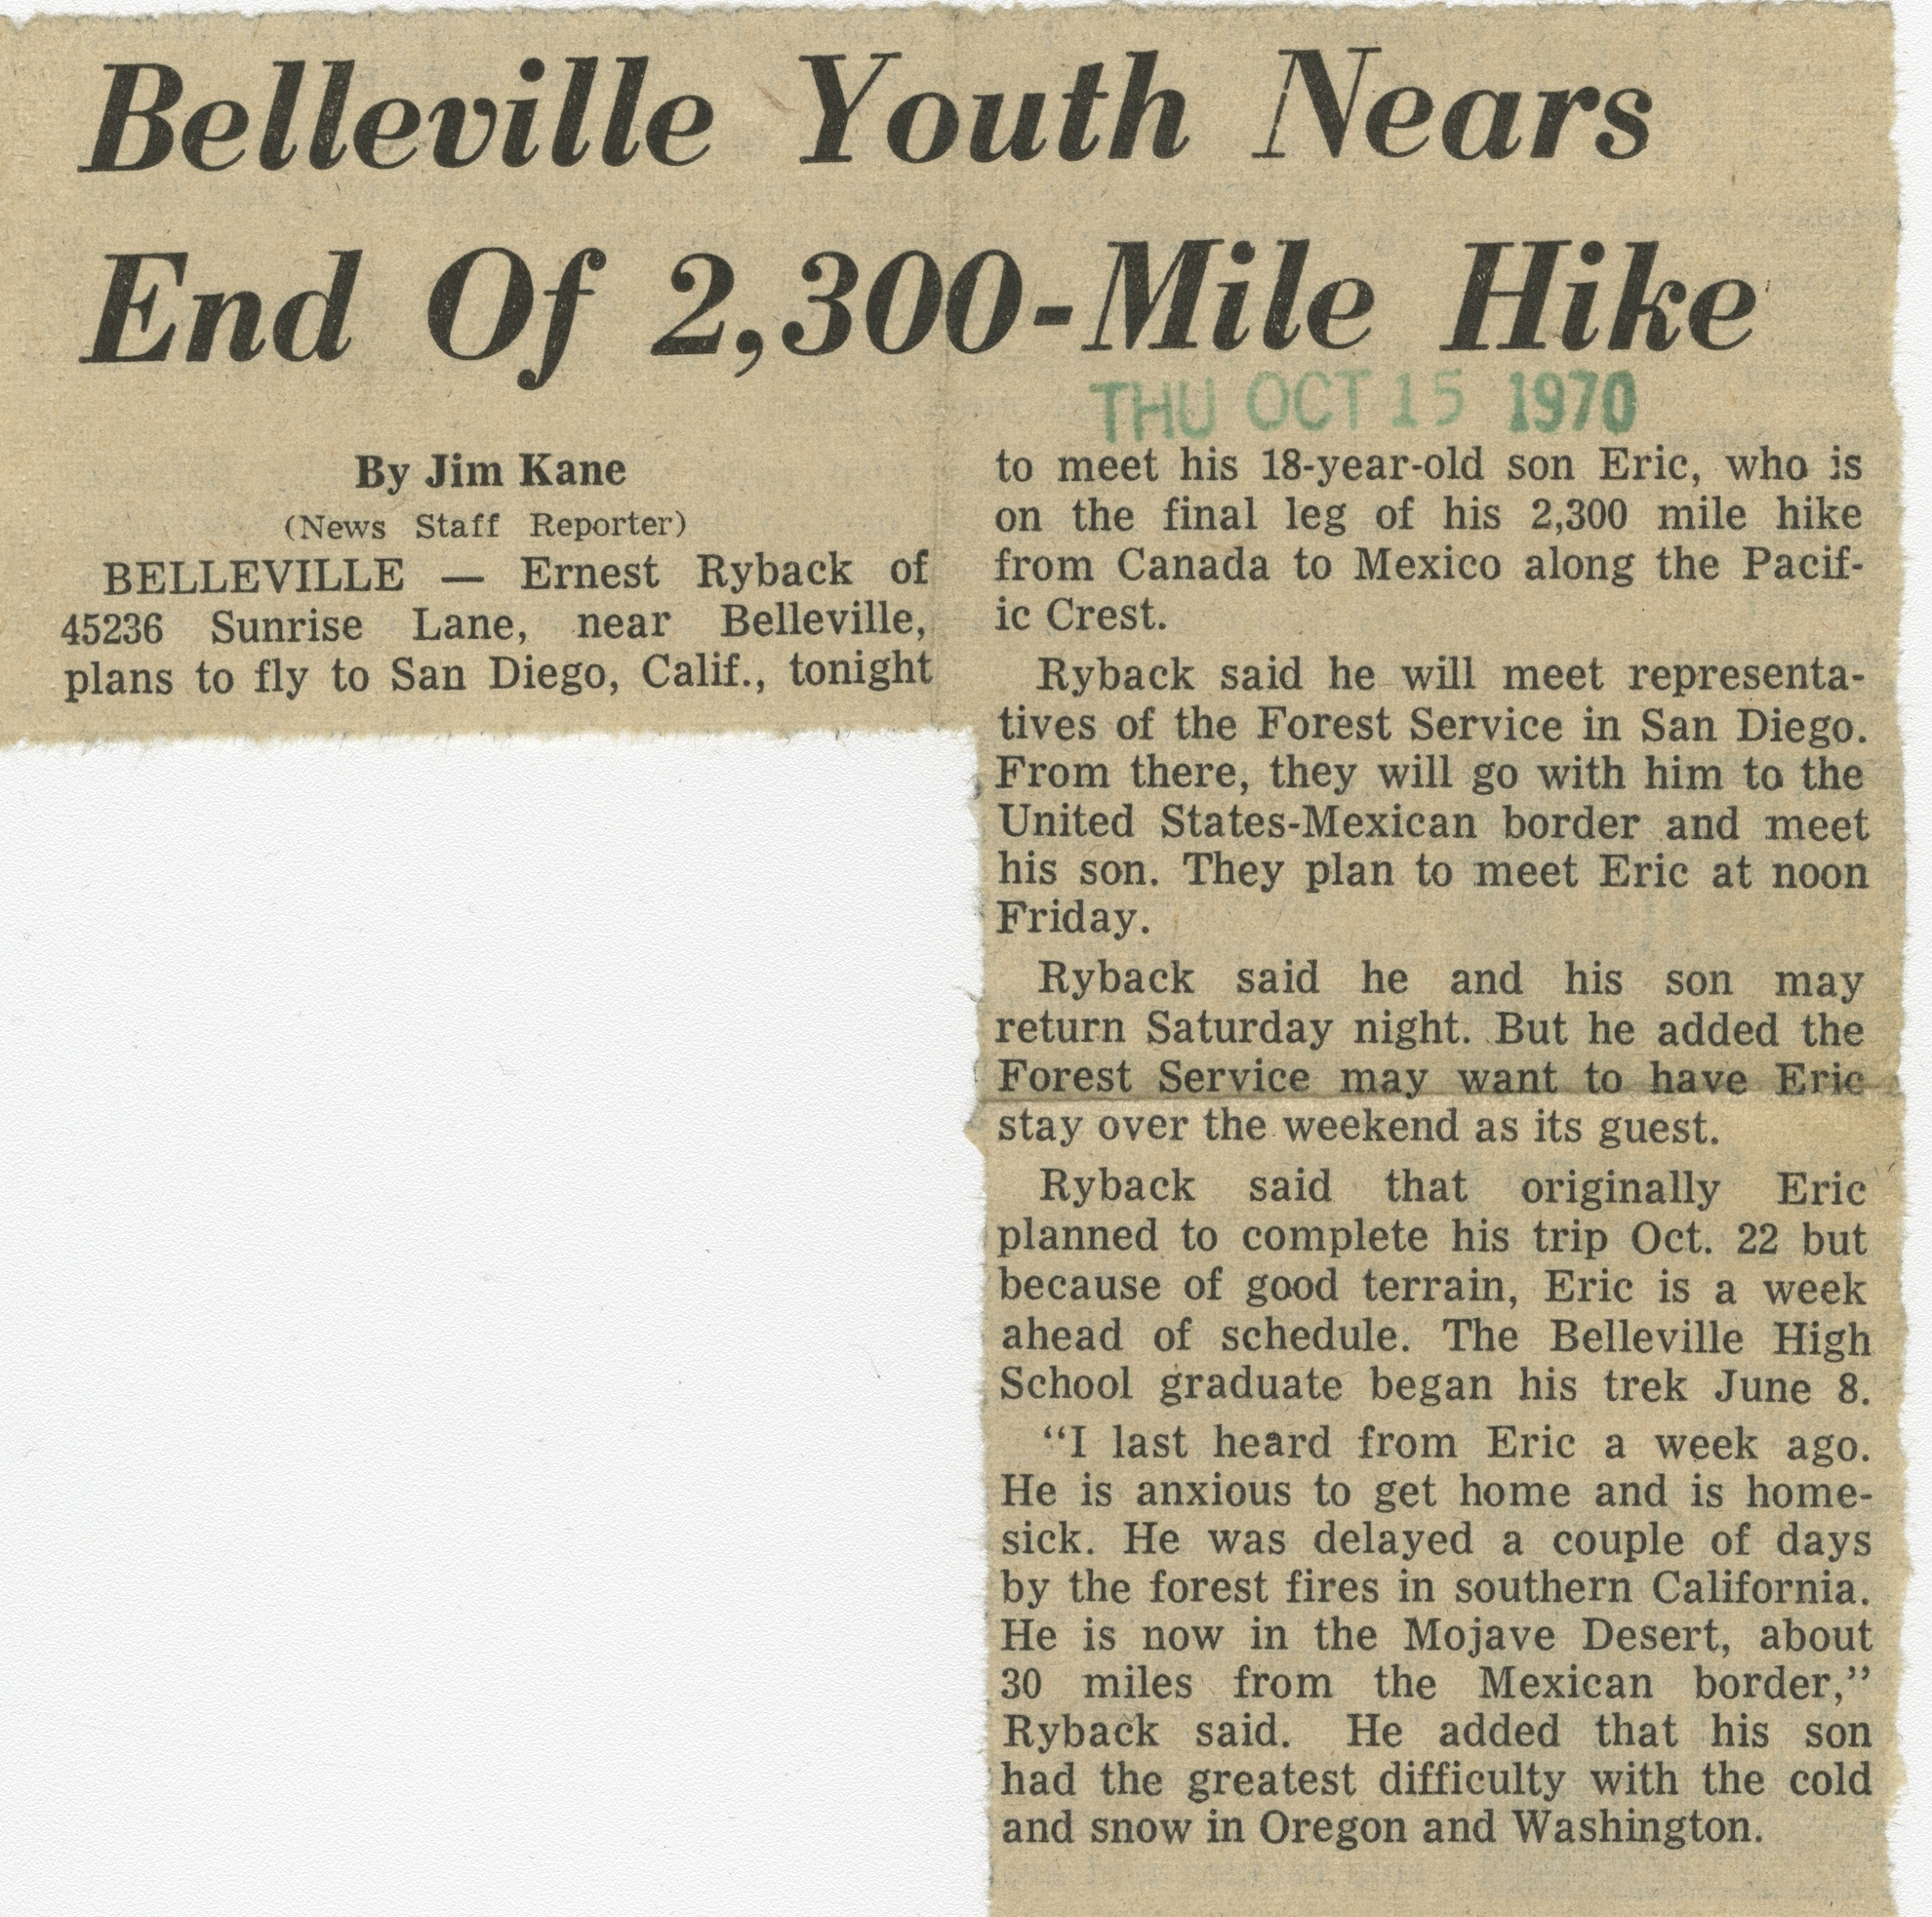 Belleville Youth Nears End Of 2,300-Mile Hike image